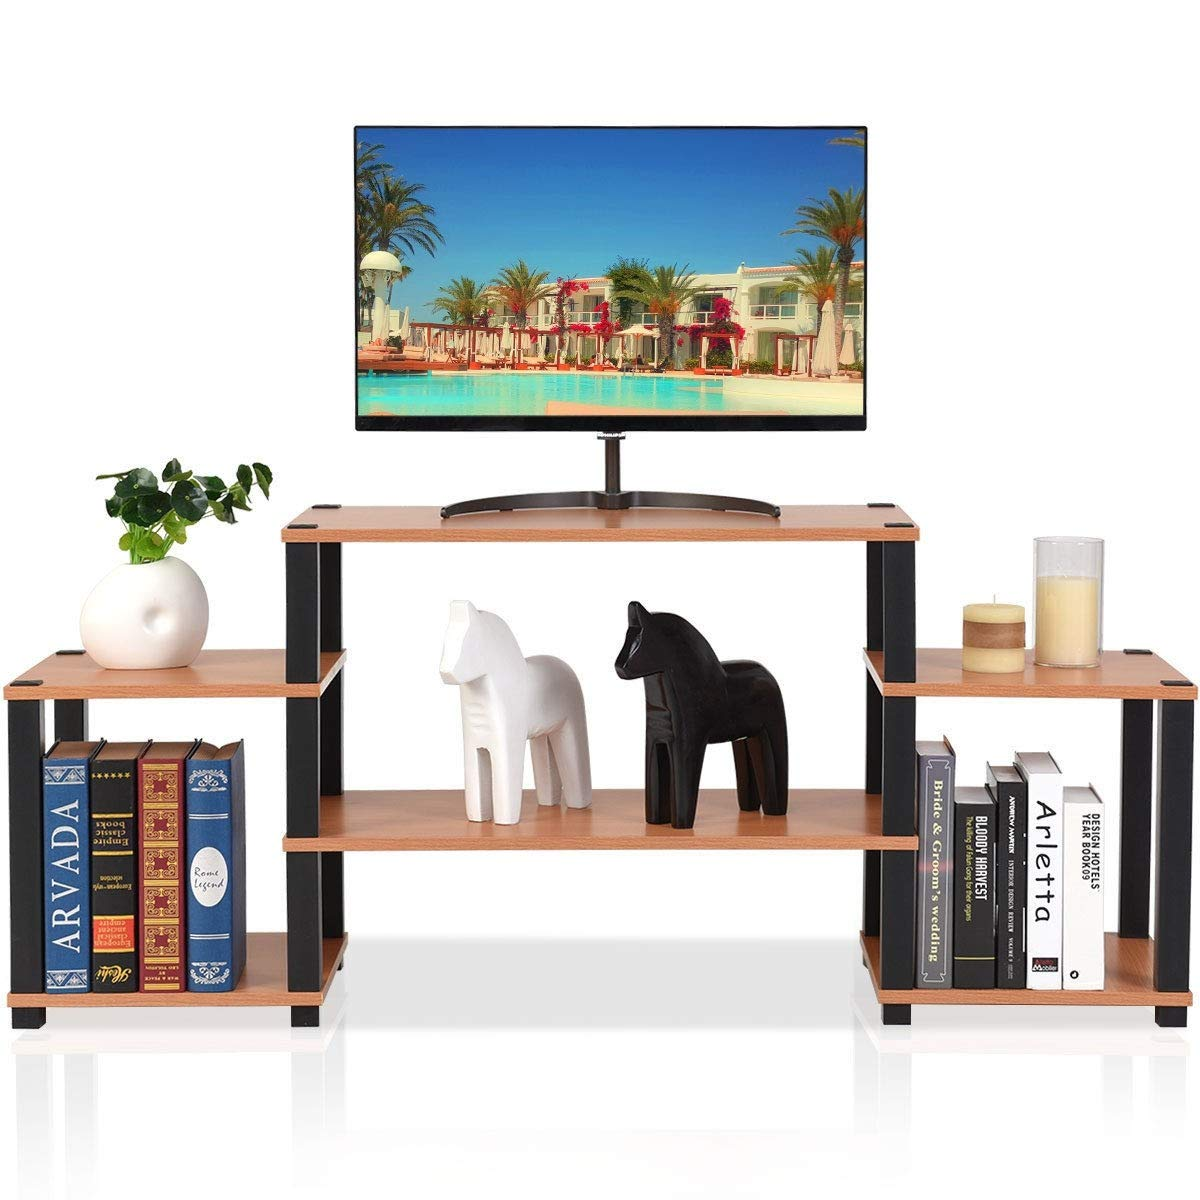 KING77777 Durable and Sturdy Construction 57'' L TV Stand Console Furniture Multi- Function Storage Organizer Cabinet by KING77777 (Image #3)